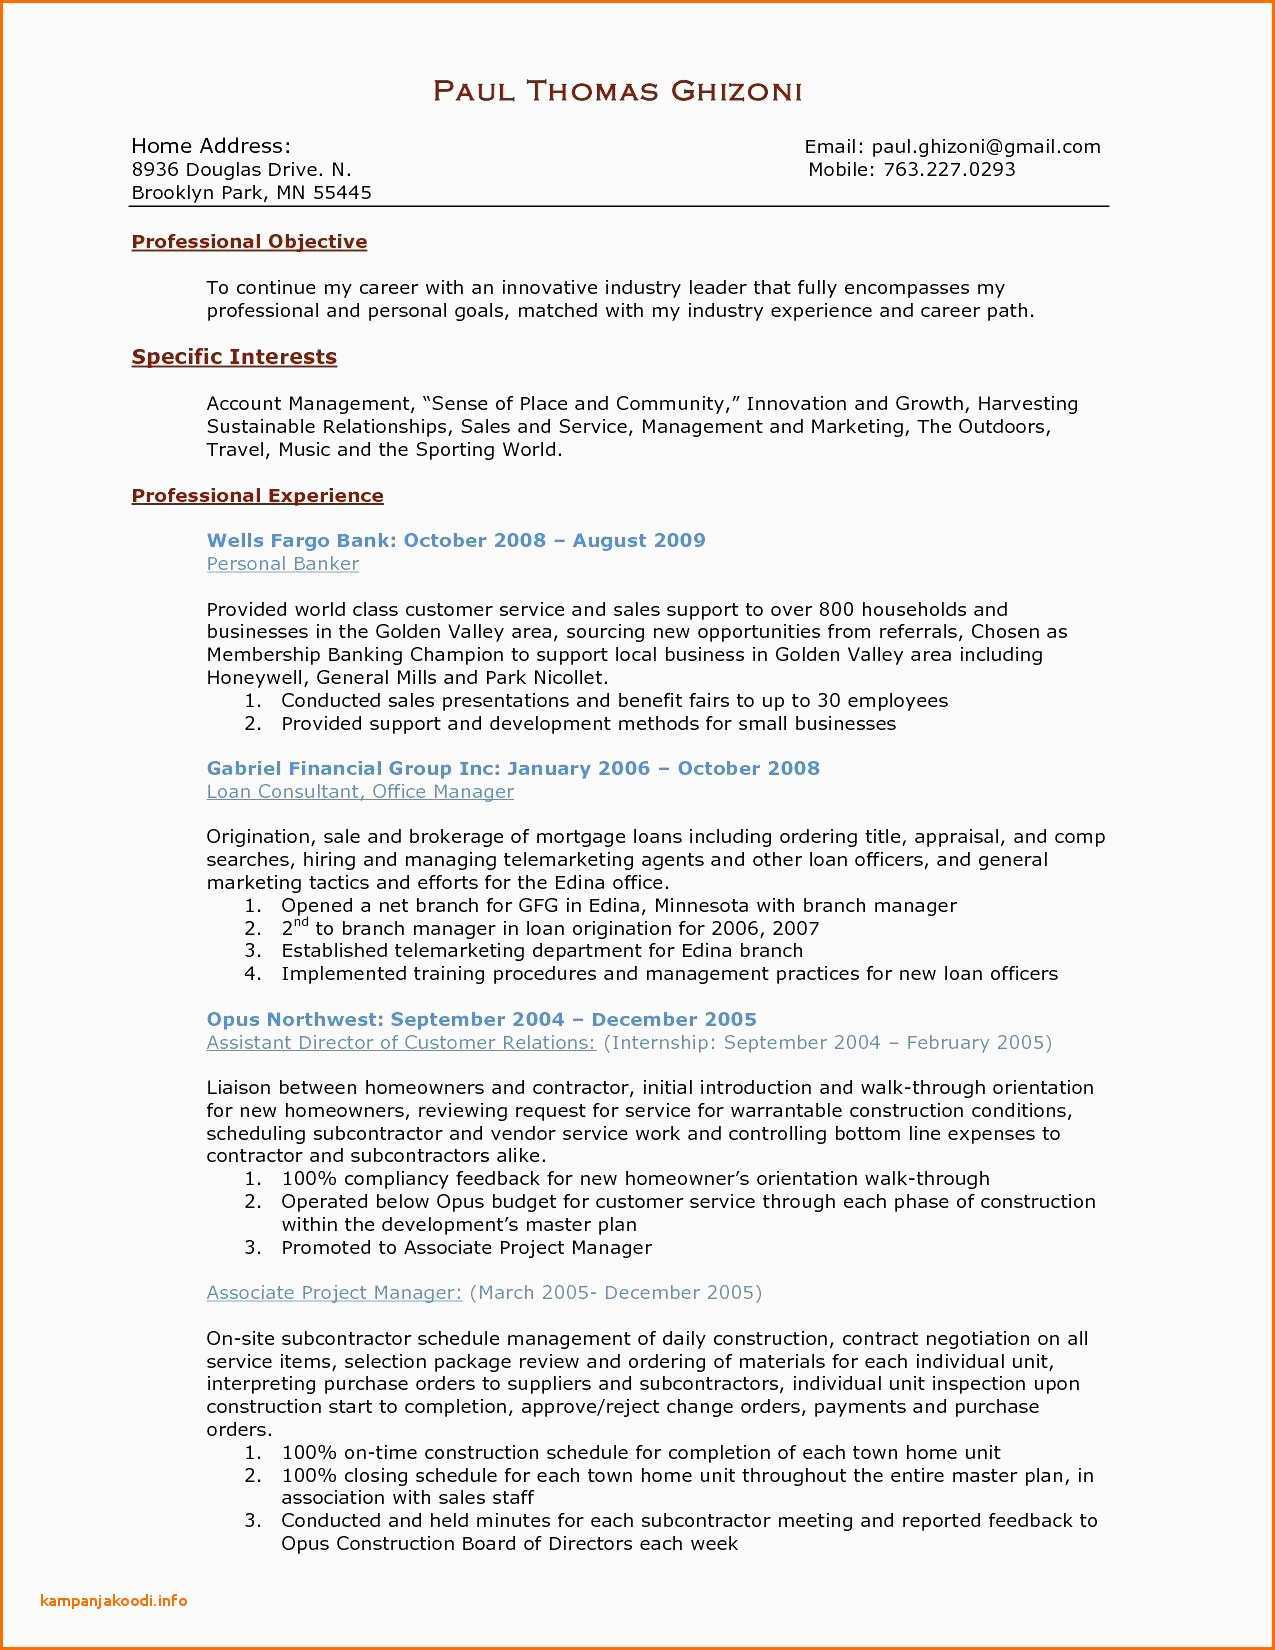 Sports Resume Template - Manager Resume Example 40 Fresh Project Manager Resume Example